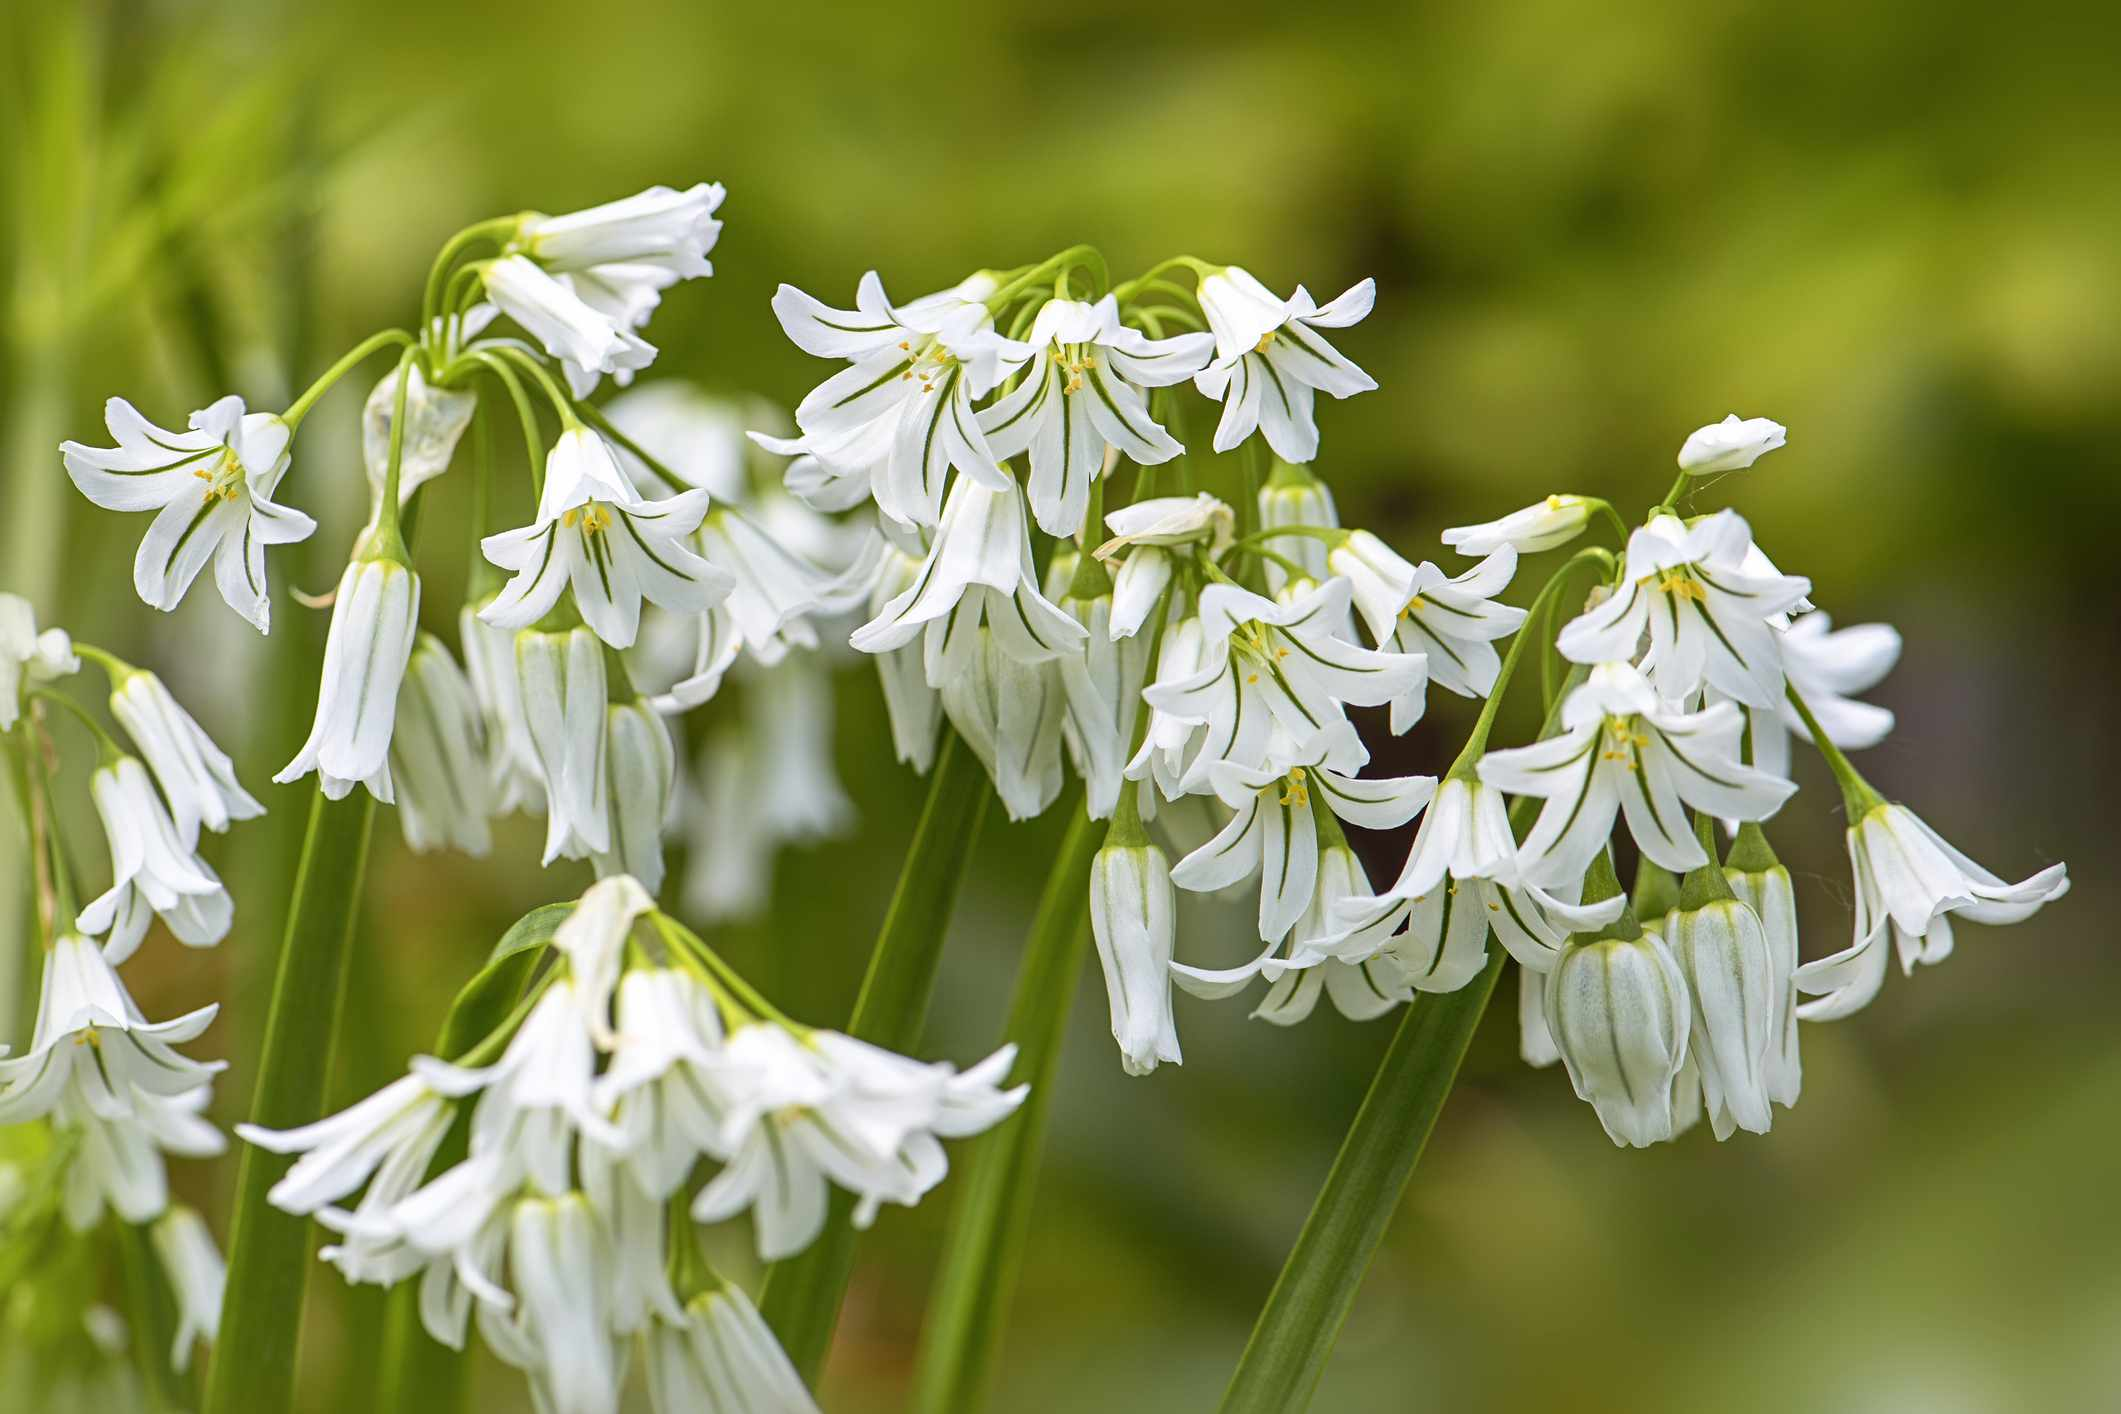 Delicate white flowers hanging from a green wild onion plant